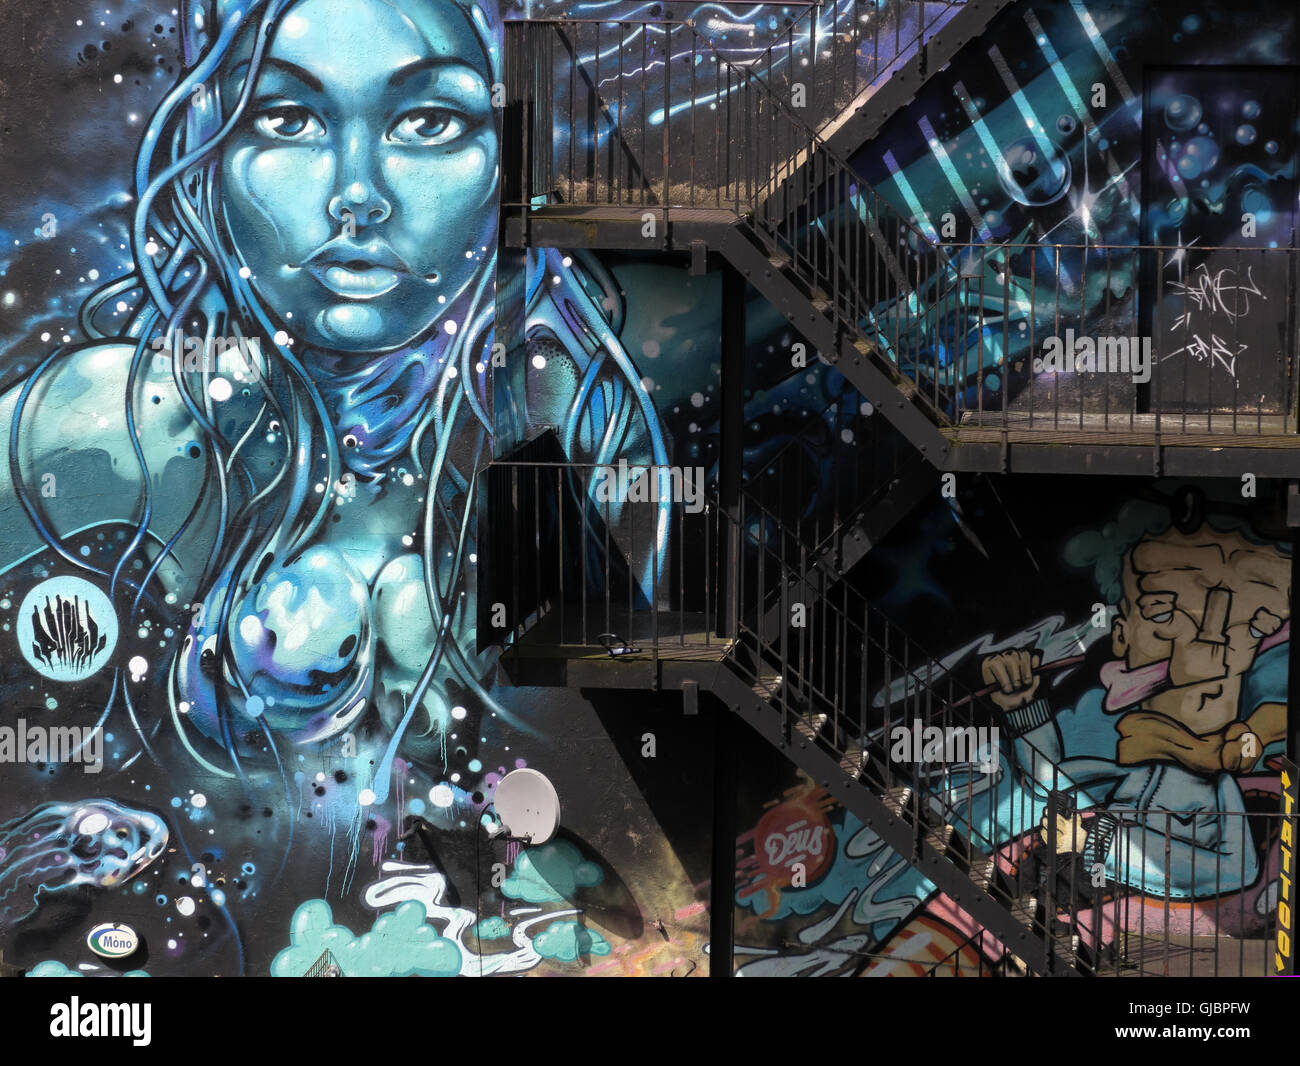 Northern Quarter Graffiti,Church St,Manchester,Lancashire,England,UK - Stock Image